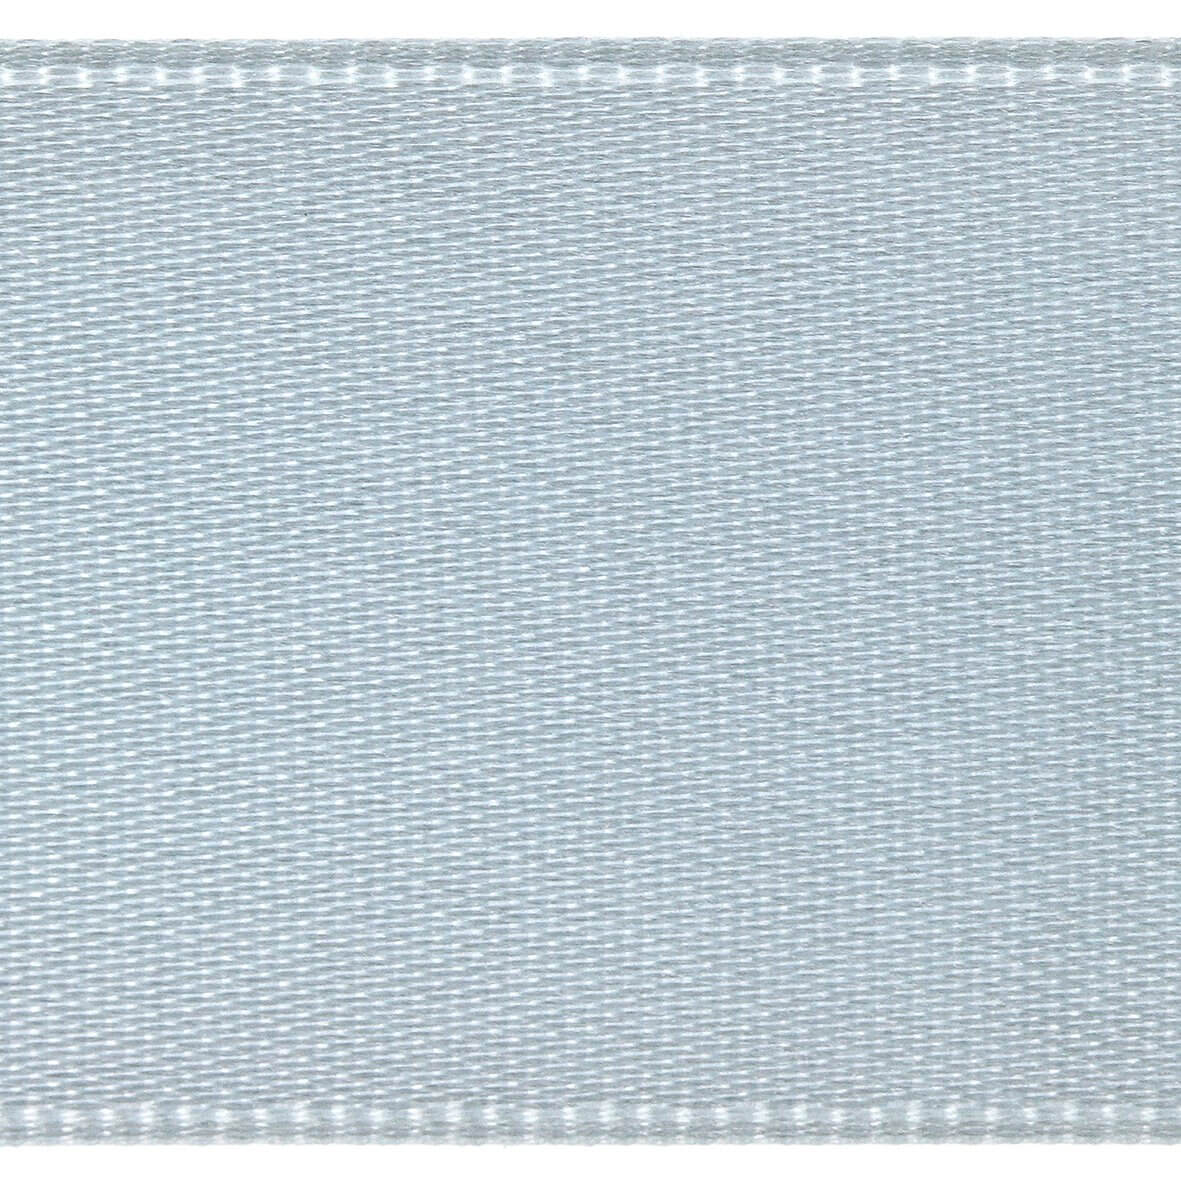 25mm Berisfords Satin Ribbon - Sky Colour 3